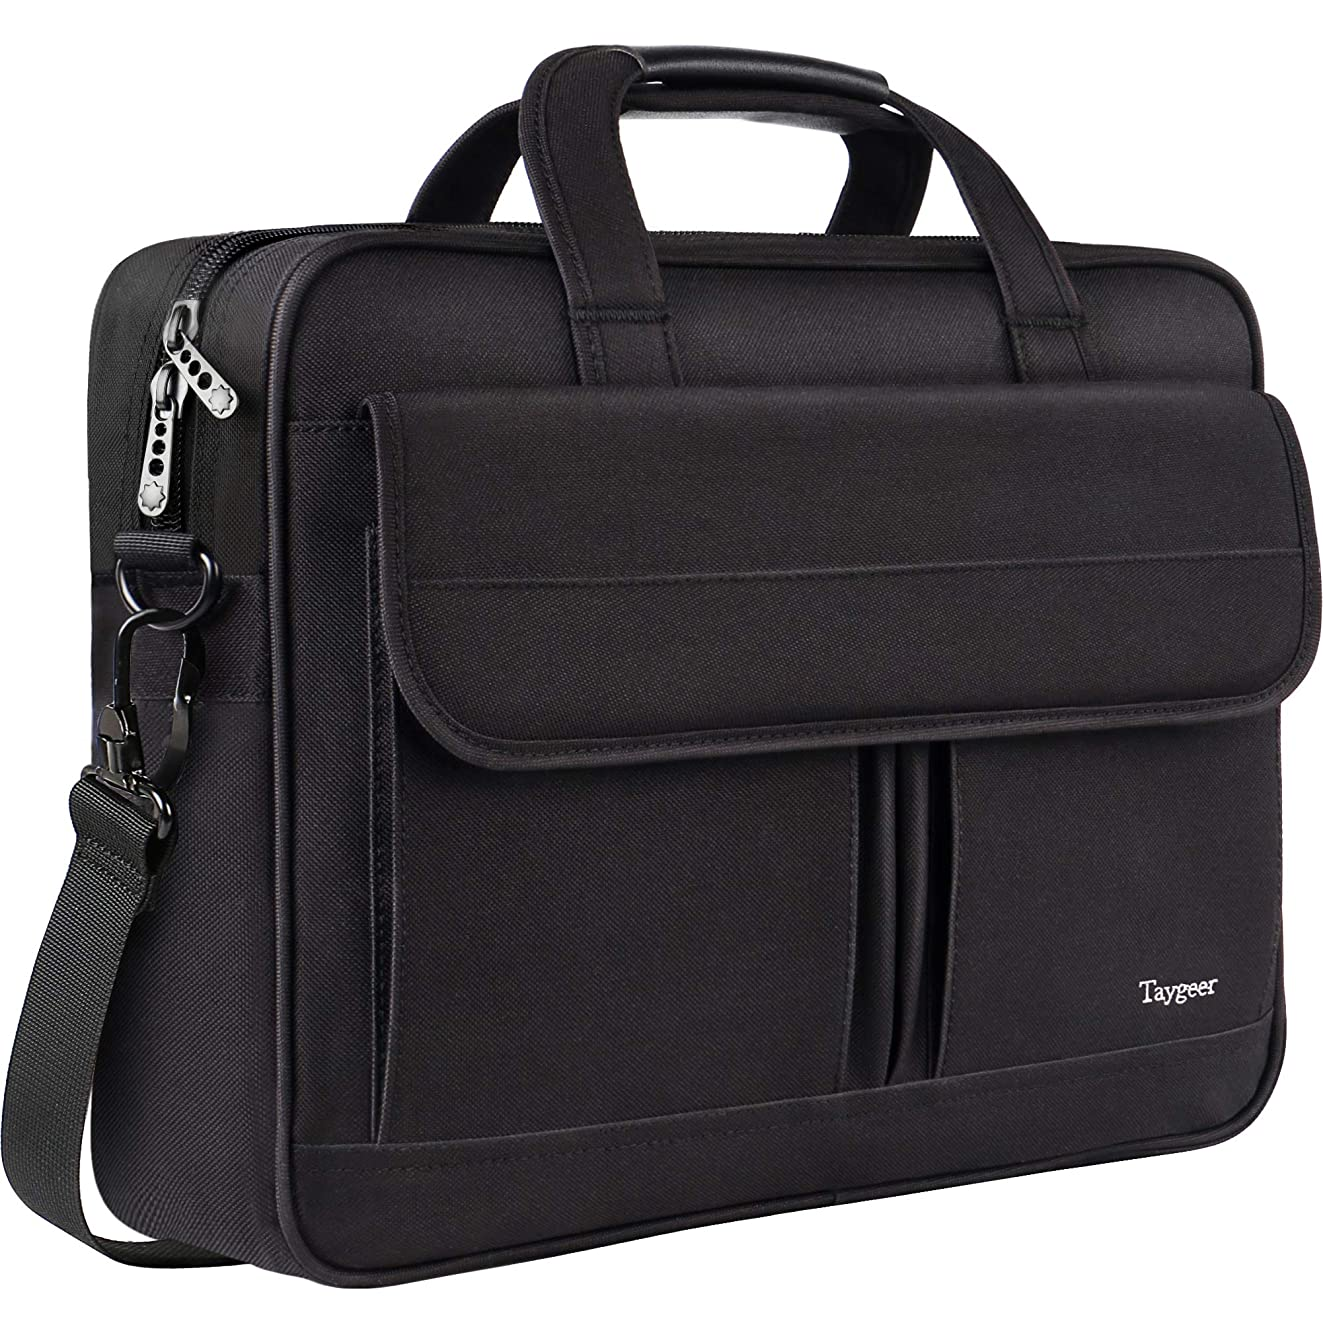 Taygeer Laptop Bag 15.6 Inch, Business Briefcase for Men Women, 15inch Water Resistant Messenger Shoulder Bag with Strap, Durable Office Bag, Carry On Handle Case for Computer Notebook MacBook,Black